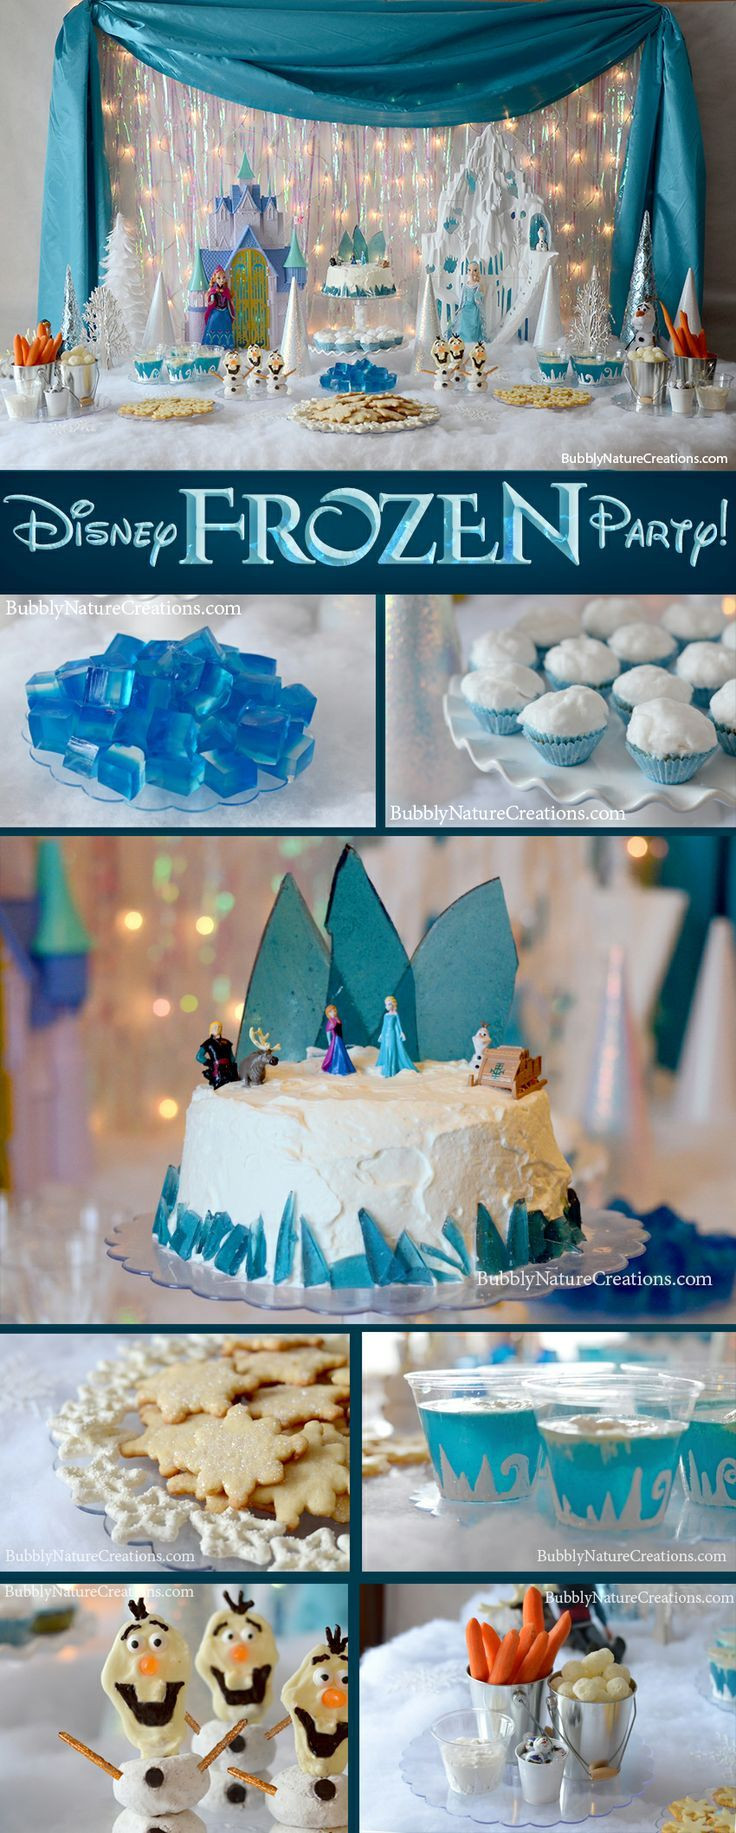 Best ideas about Frozen Themed Birthday Party . Save or Pin Disney Frozen Birthday Party Theme Now.